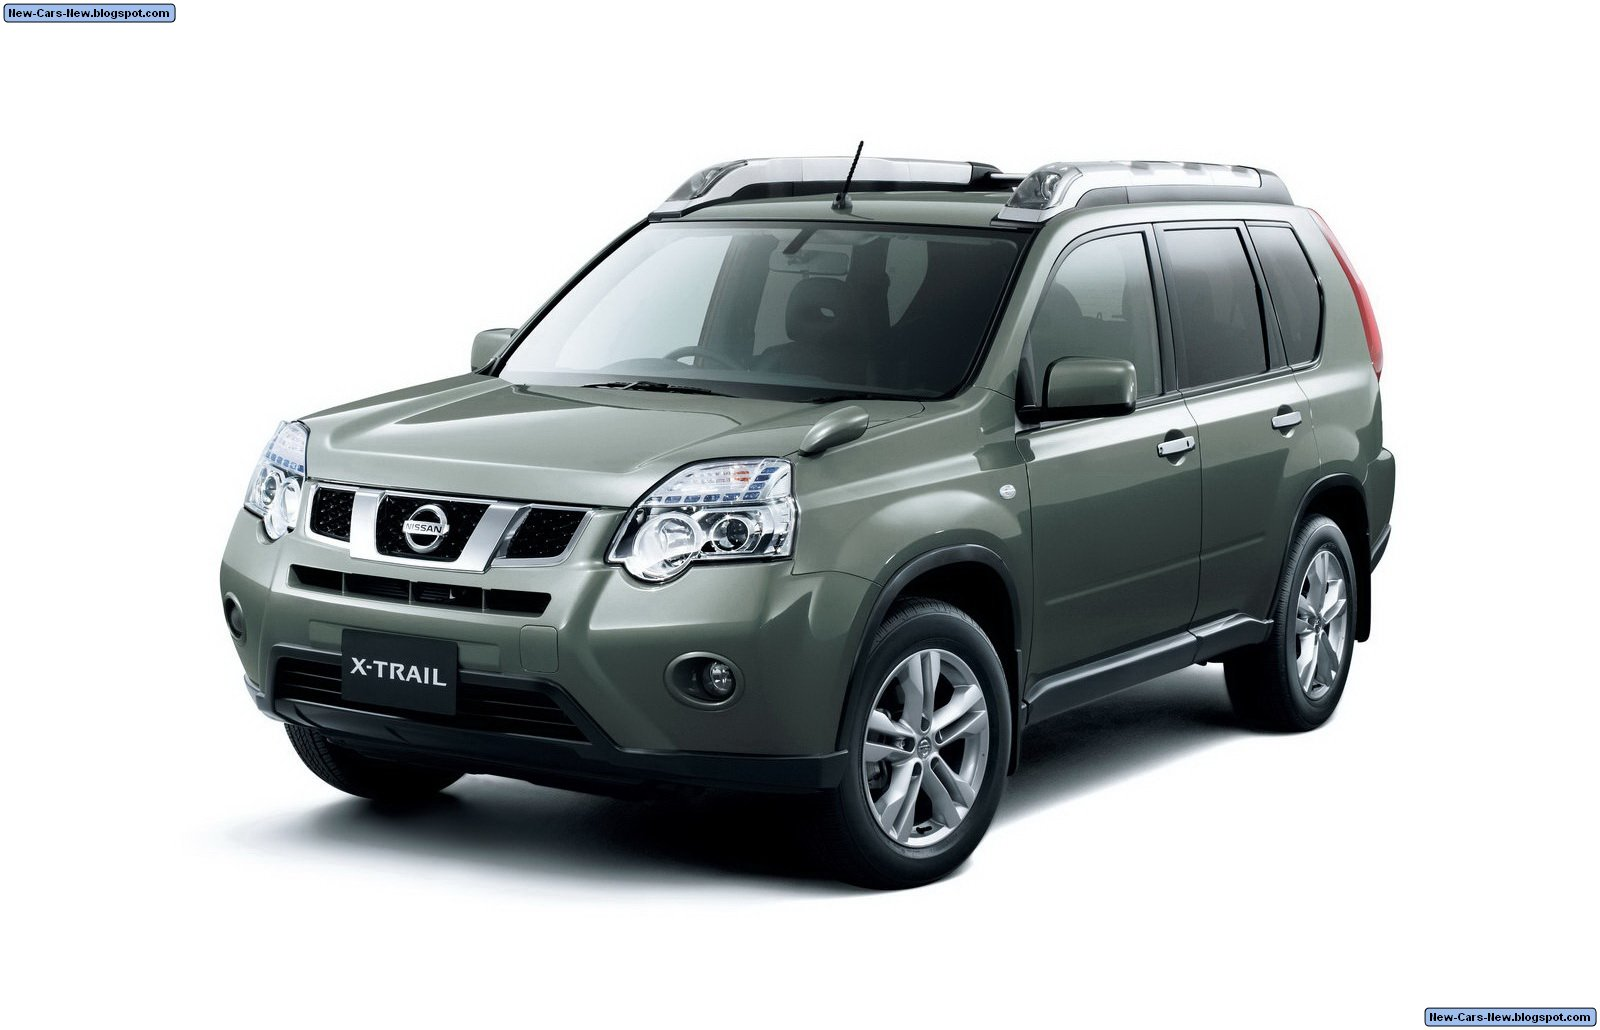 nissan x trail 2011 best car blog nissan x trail 2011. Black Bedroom Furniture Sets. Home Design Ideas